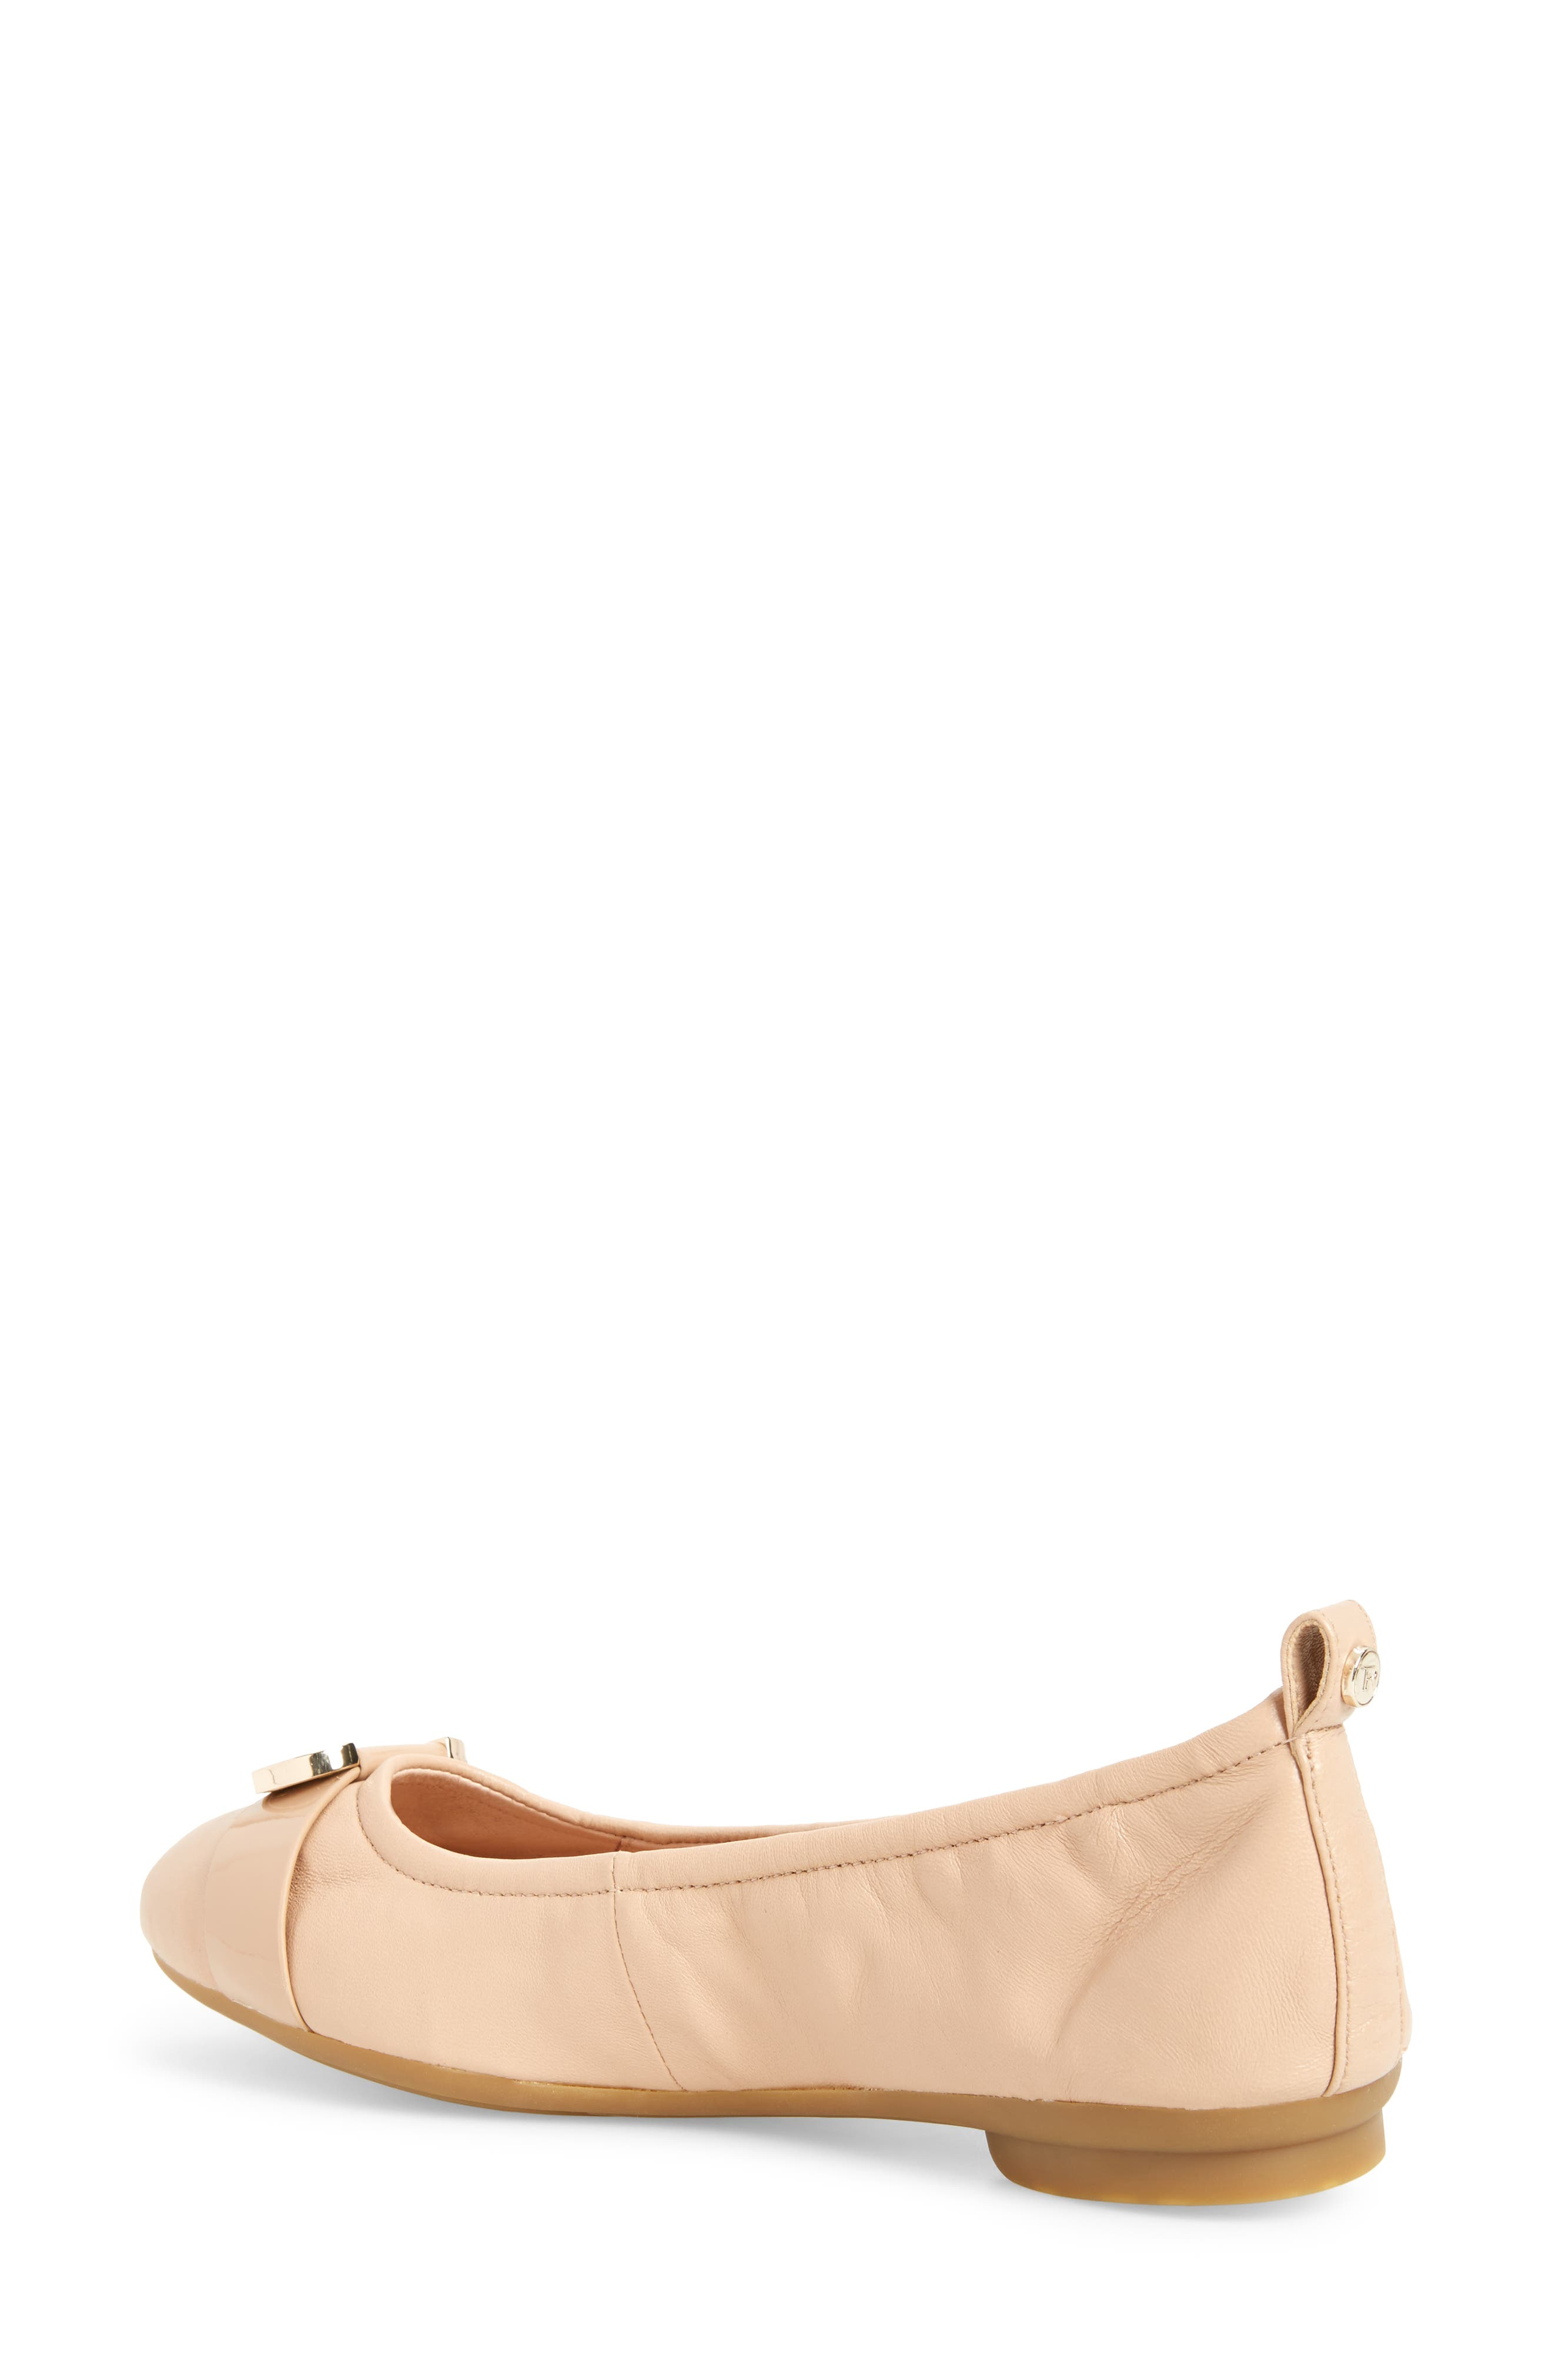 Abriana Ballet Flat,                             Alternate thumbnail 5, color,                             Nude Leather